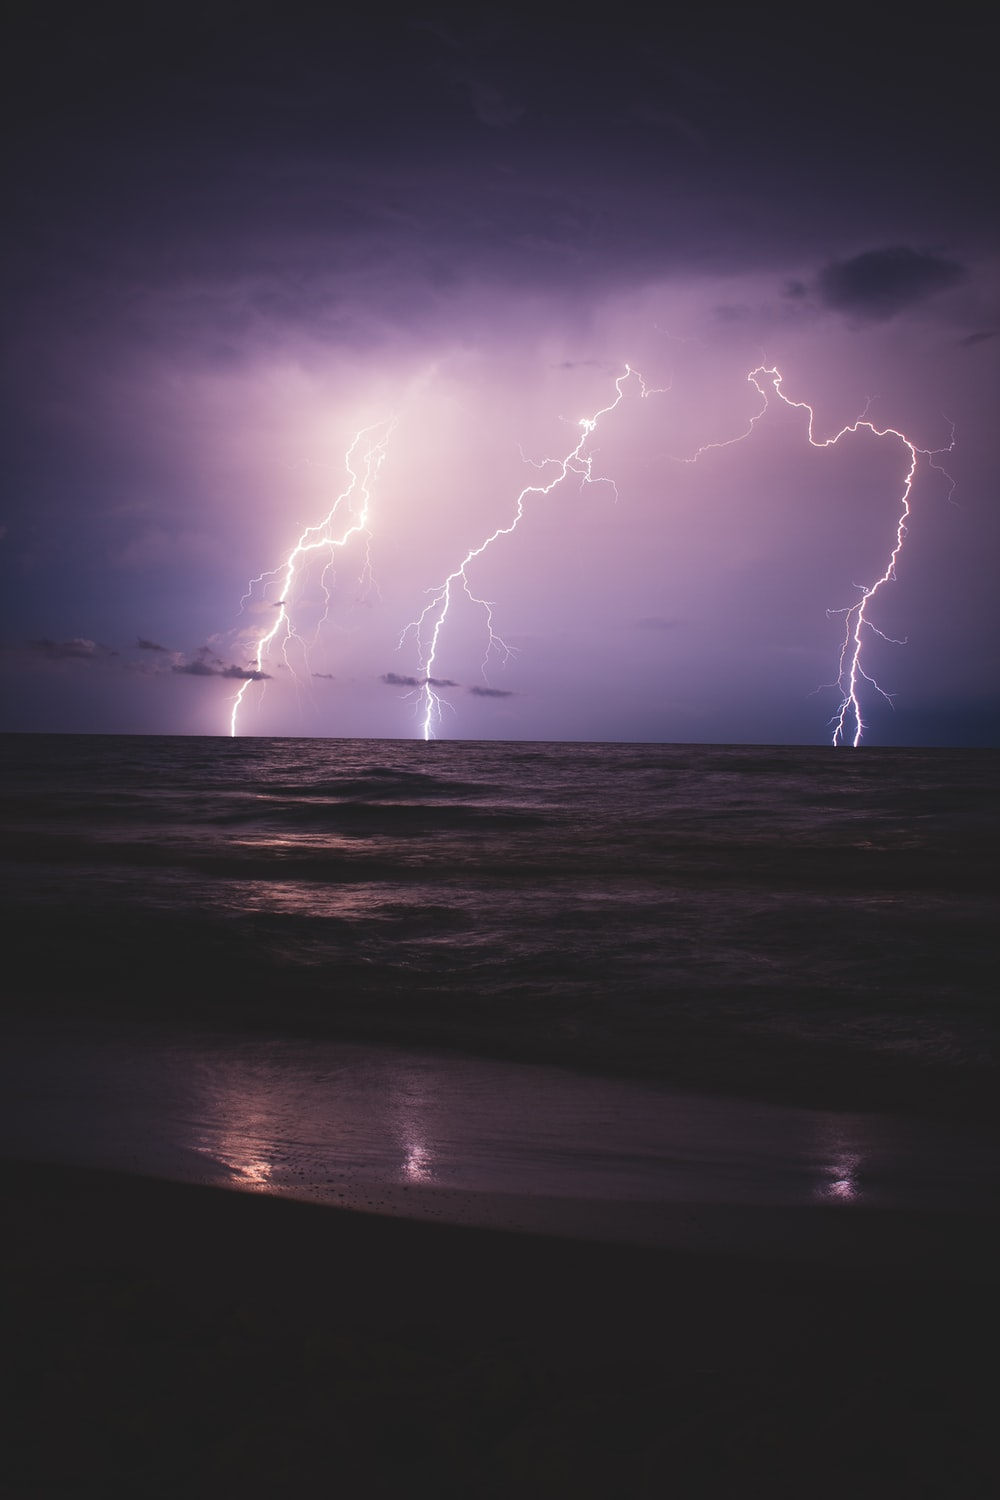 seashore and ocean with lightning during night time